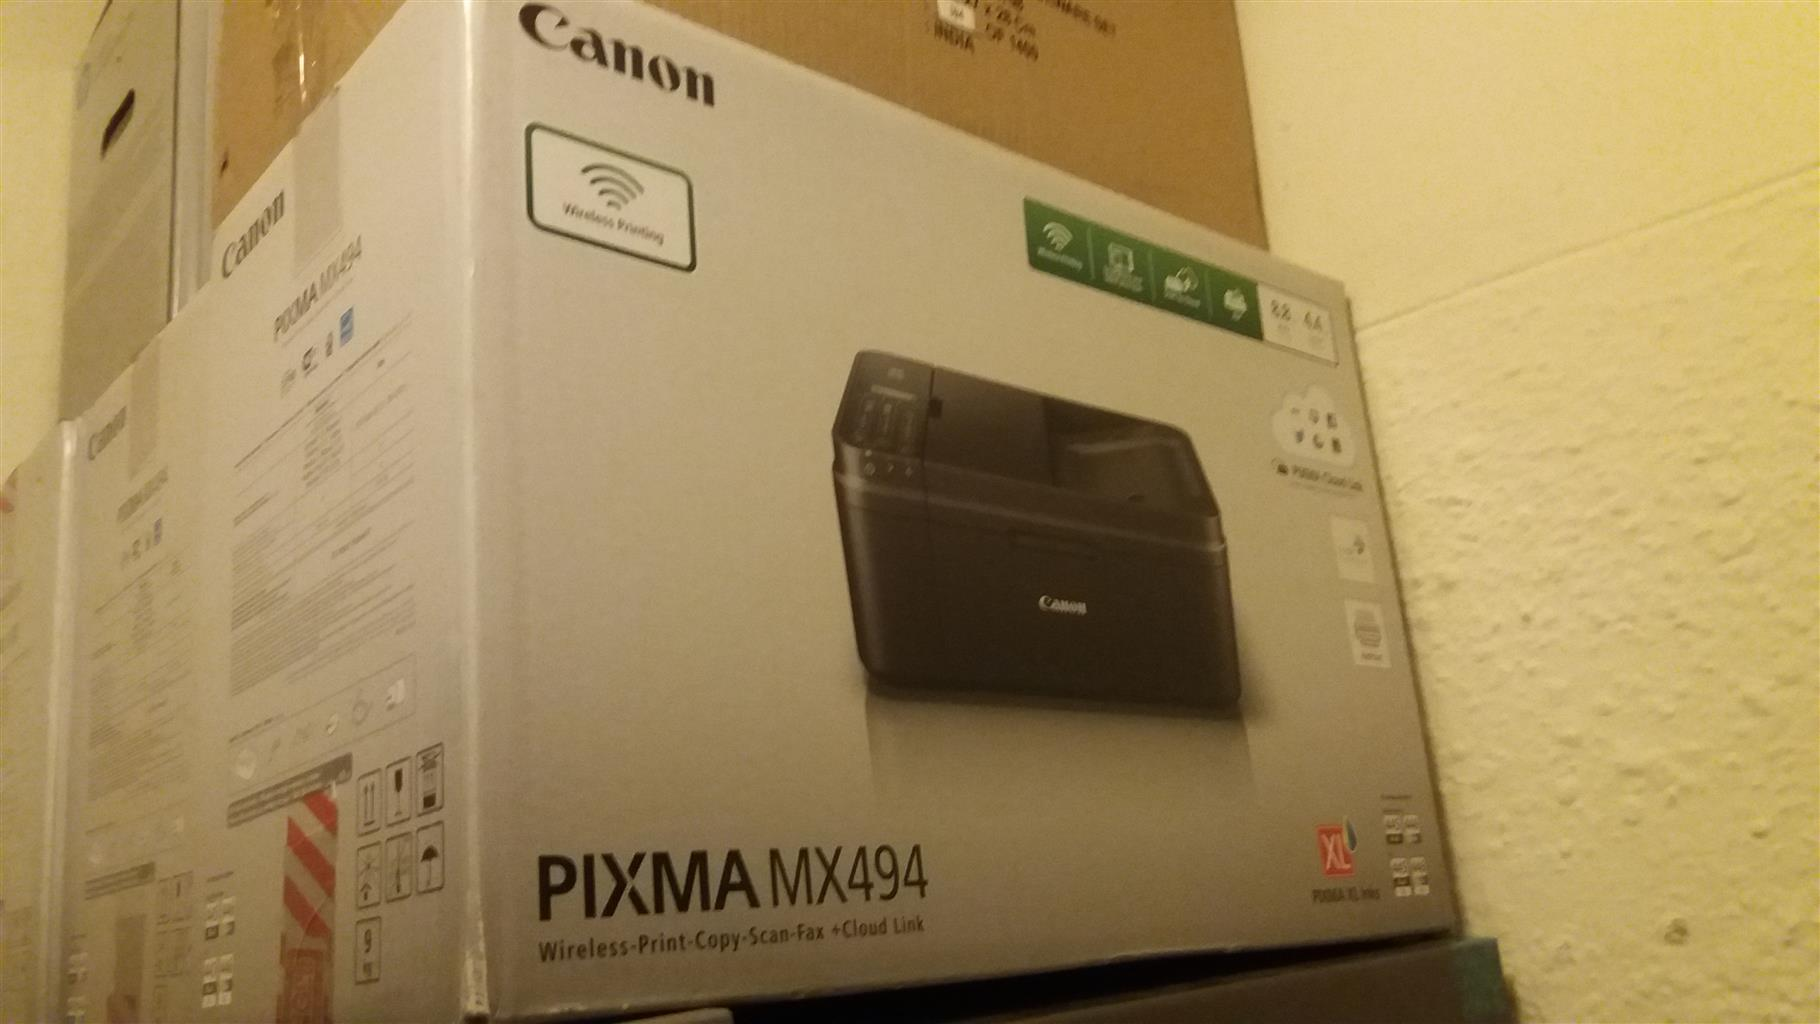 Canon Pixma MX494 Sold at Half Price